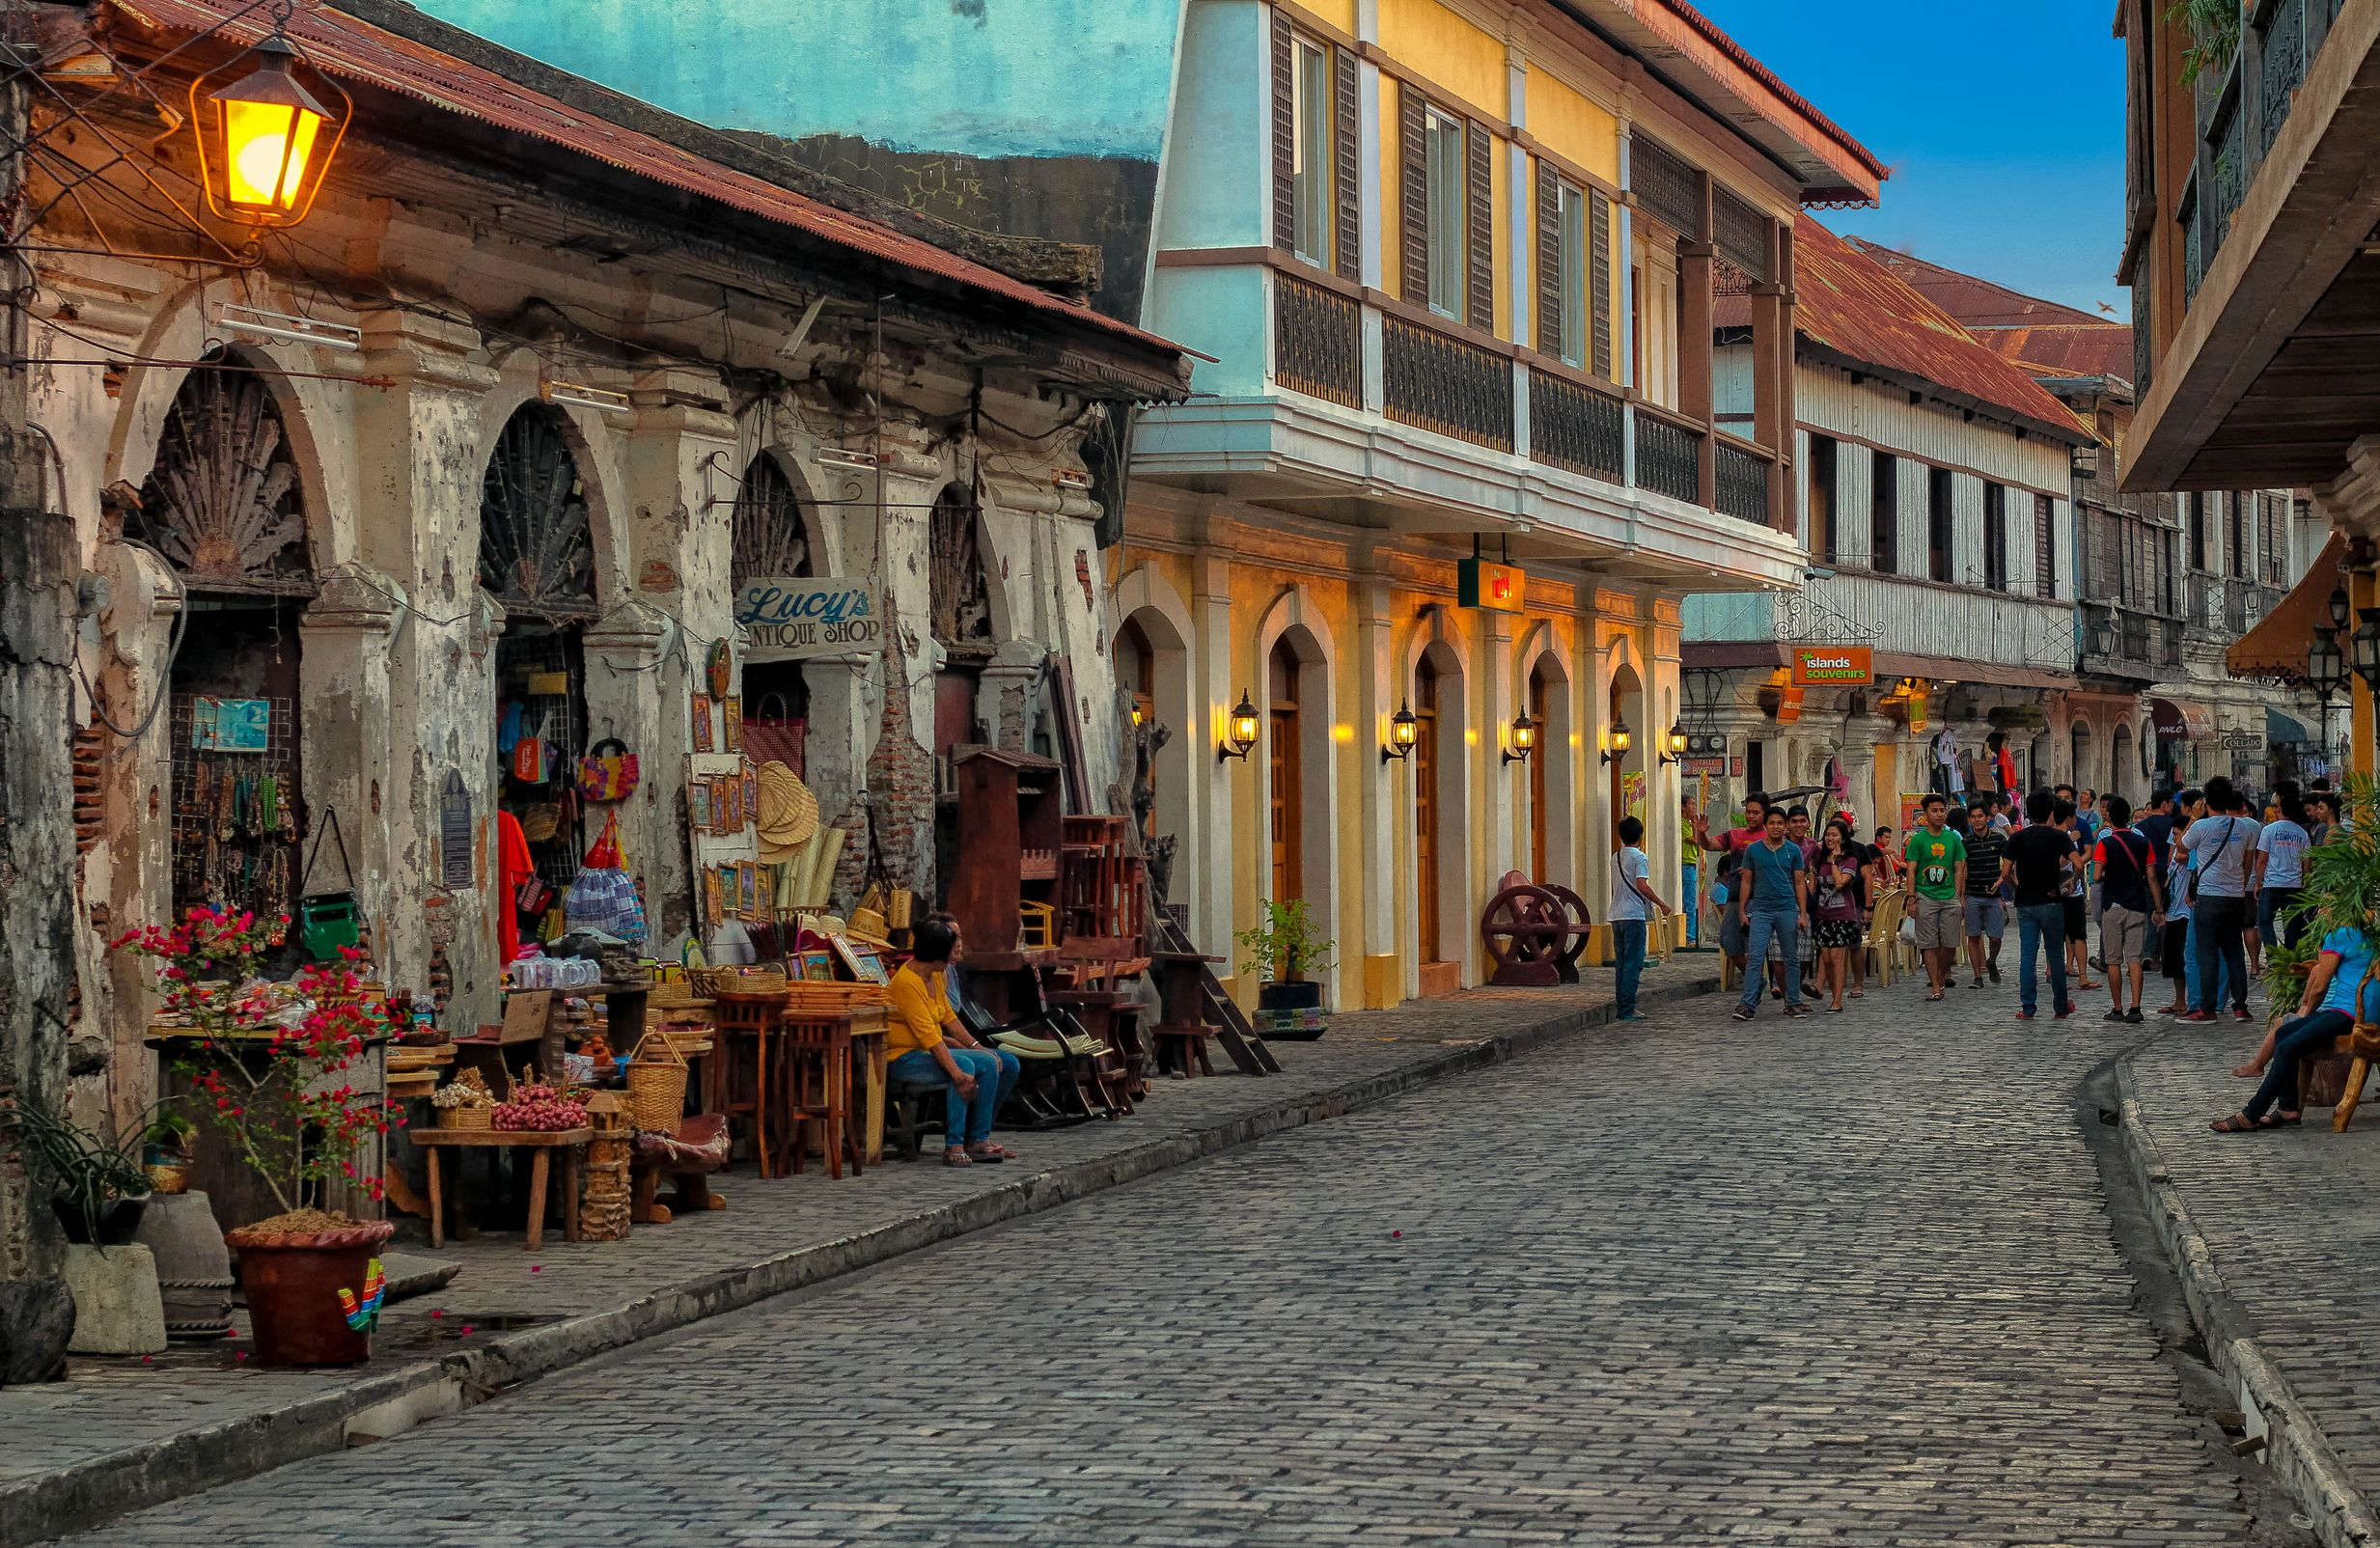 Spanish colonial homes and buildings line a cobblestone street where tourists walk along in Vigan, Philippines